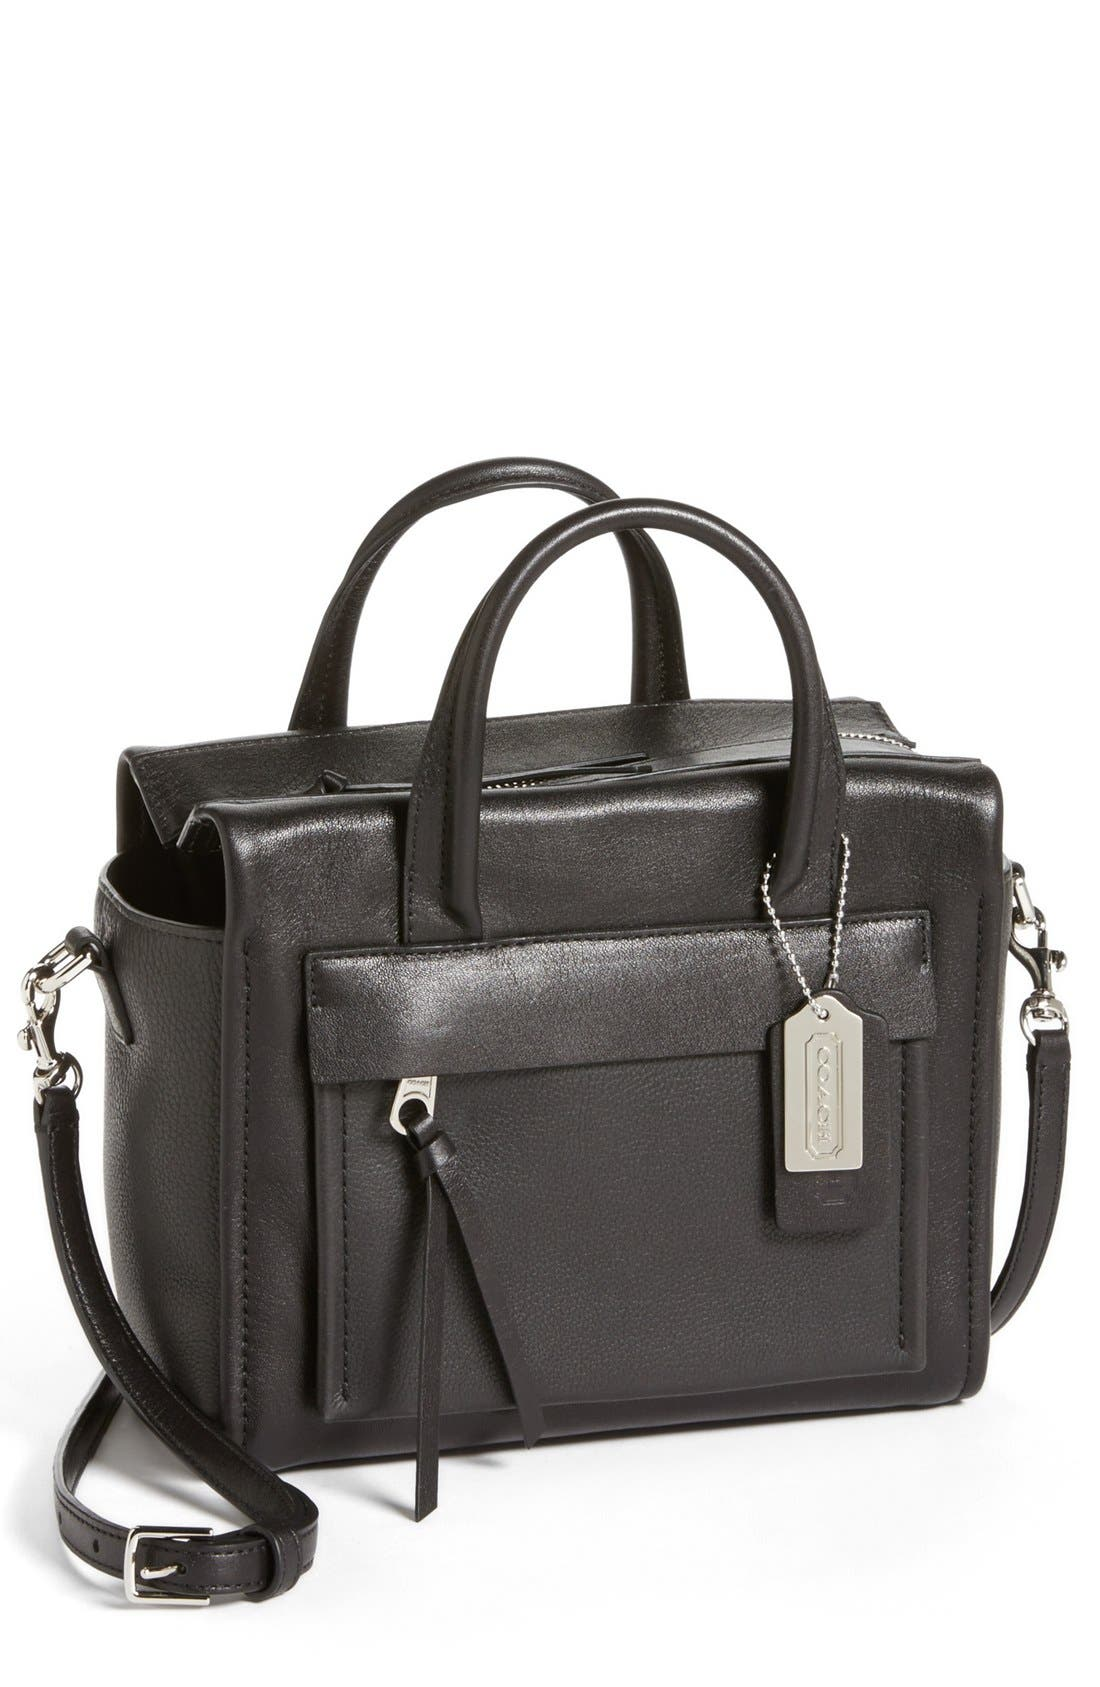 Alternate Image 1 Selected - COACH 'Bleecker - Mini Riley' Leather Crossbody Bag